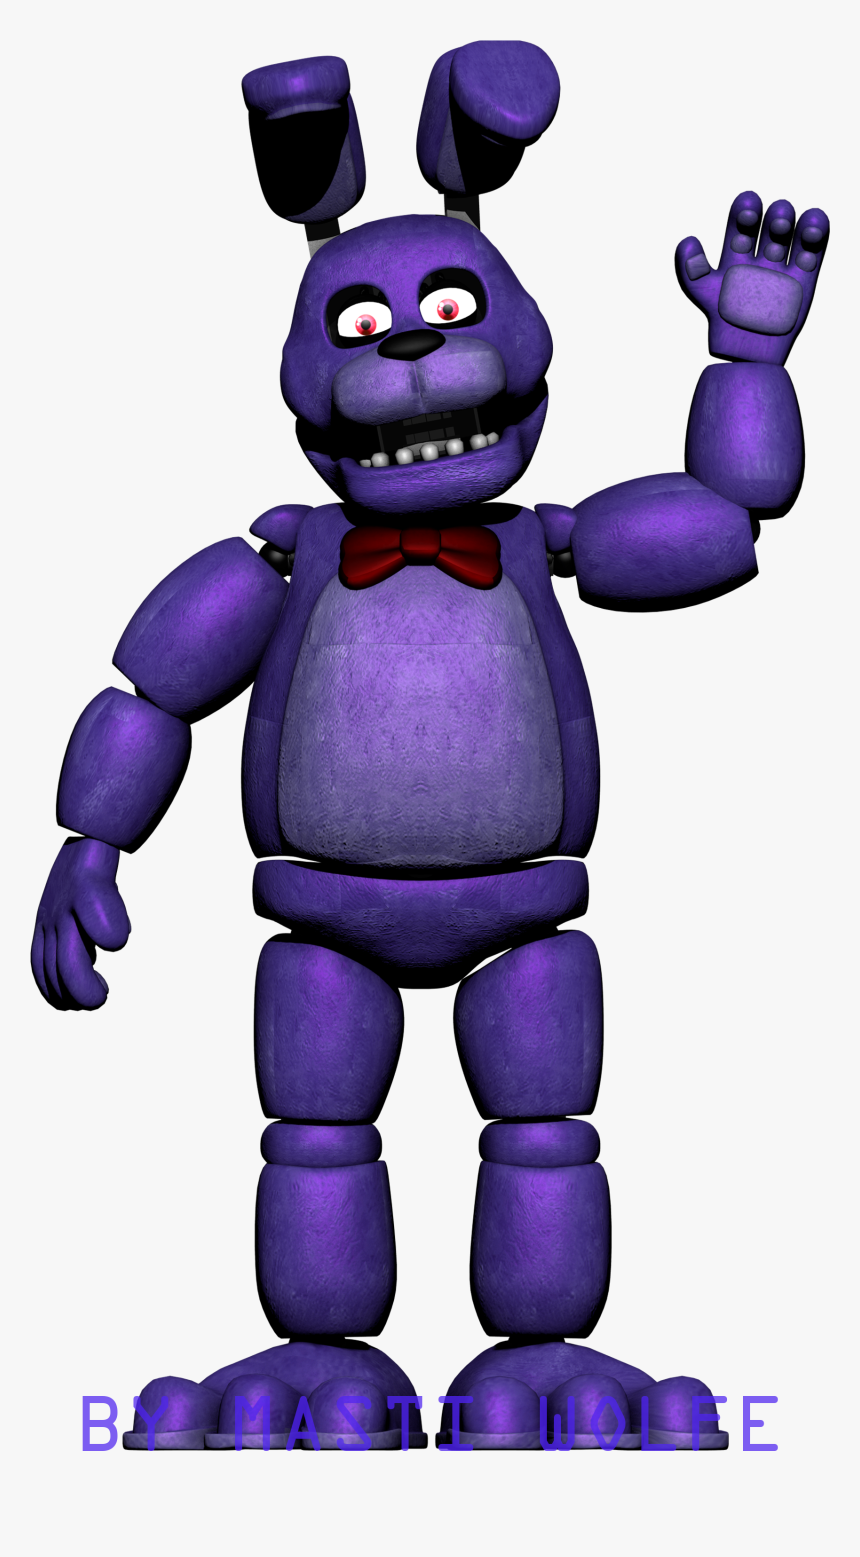 Five Nights At Freddy's Bonnie Animated five night at freddy drawing bonnie, hd png download - kindpng